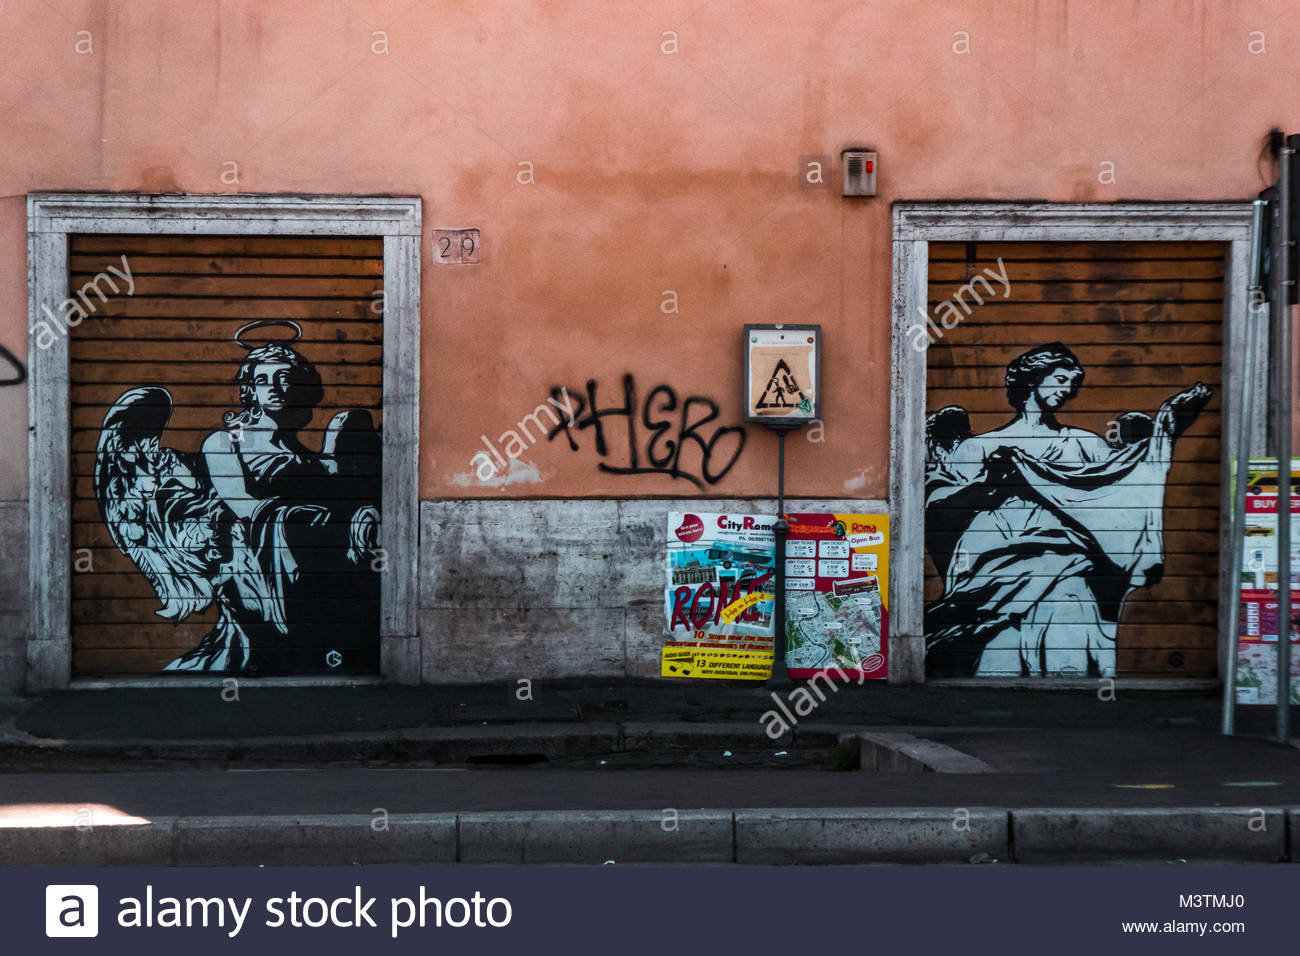 Emozioni stock photos emozioni stock images alamy for Mural work using m seal